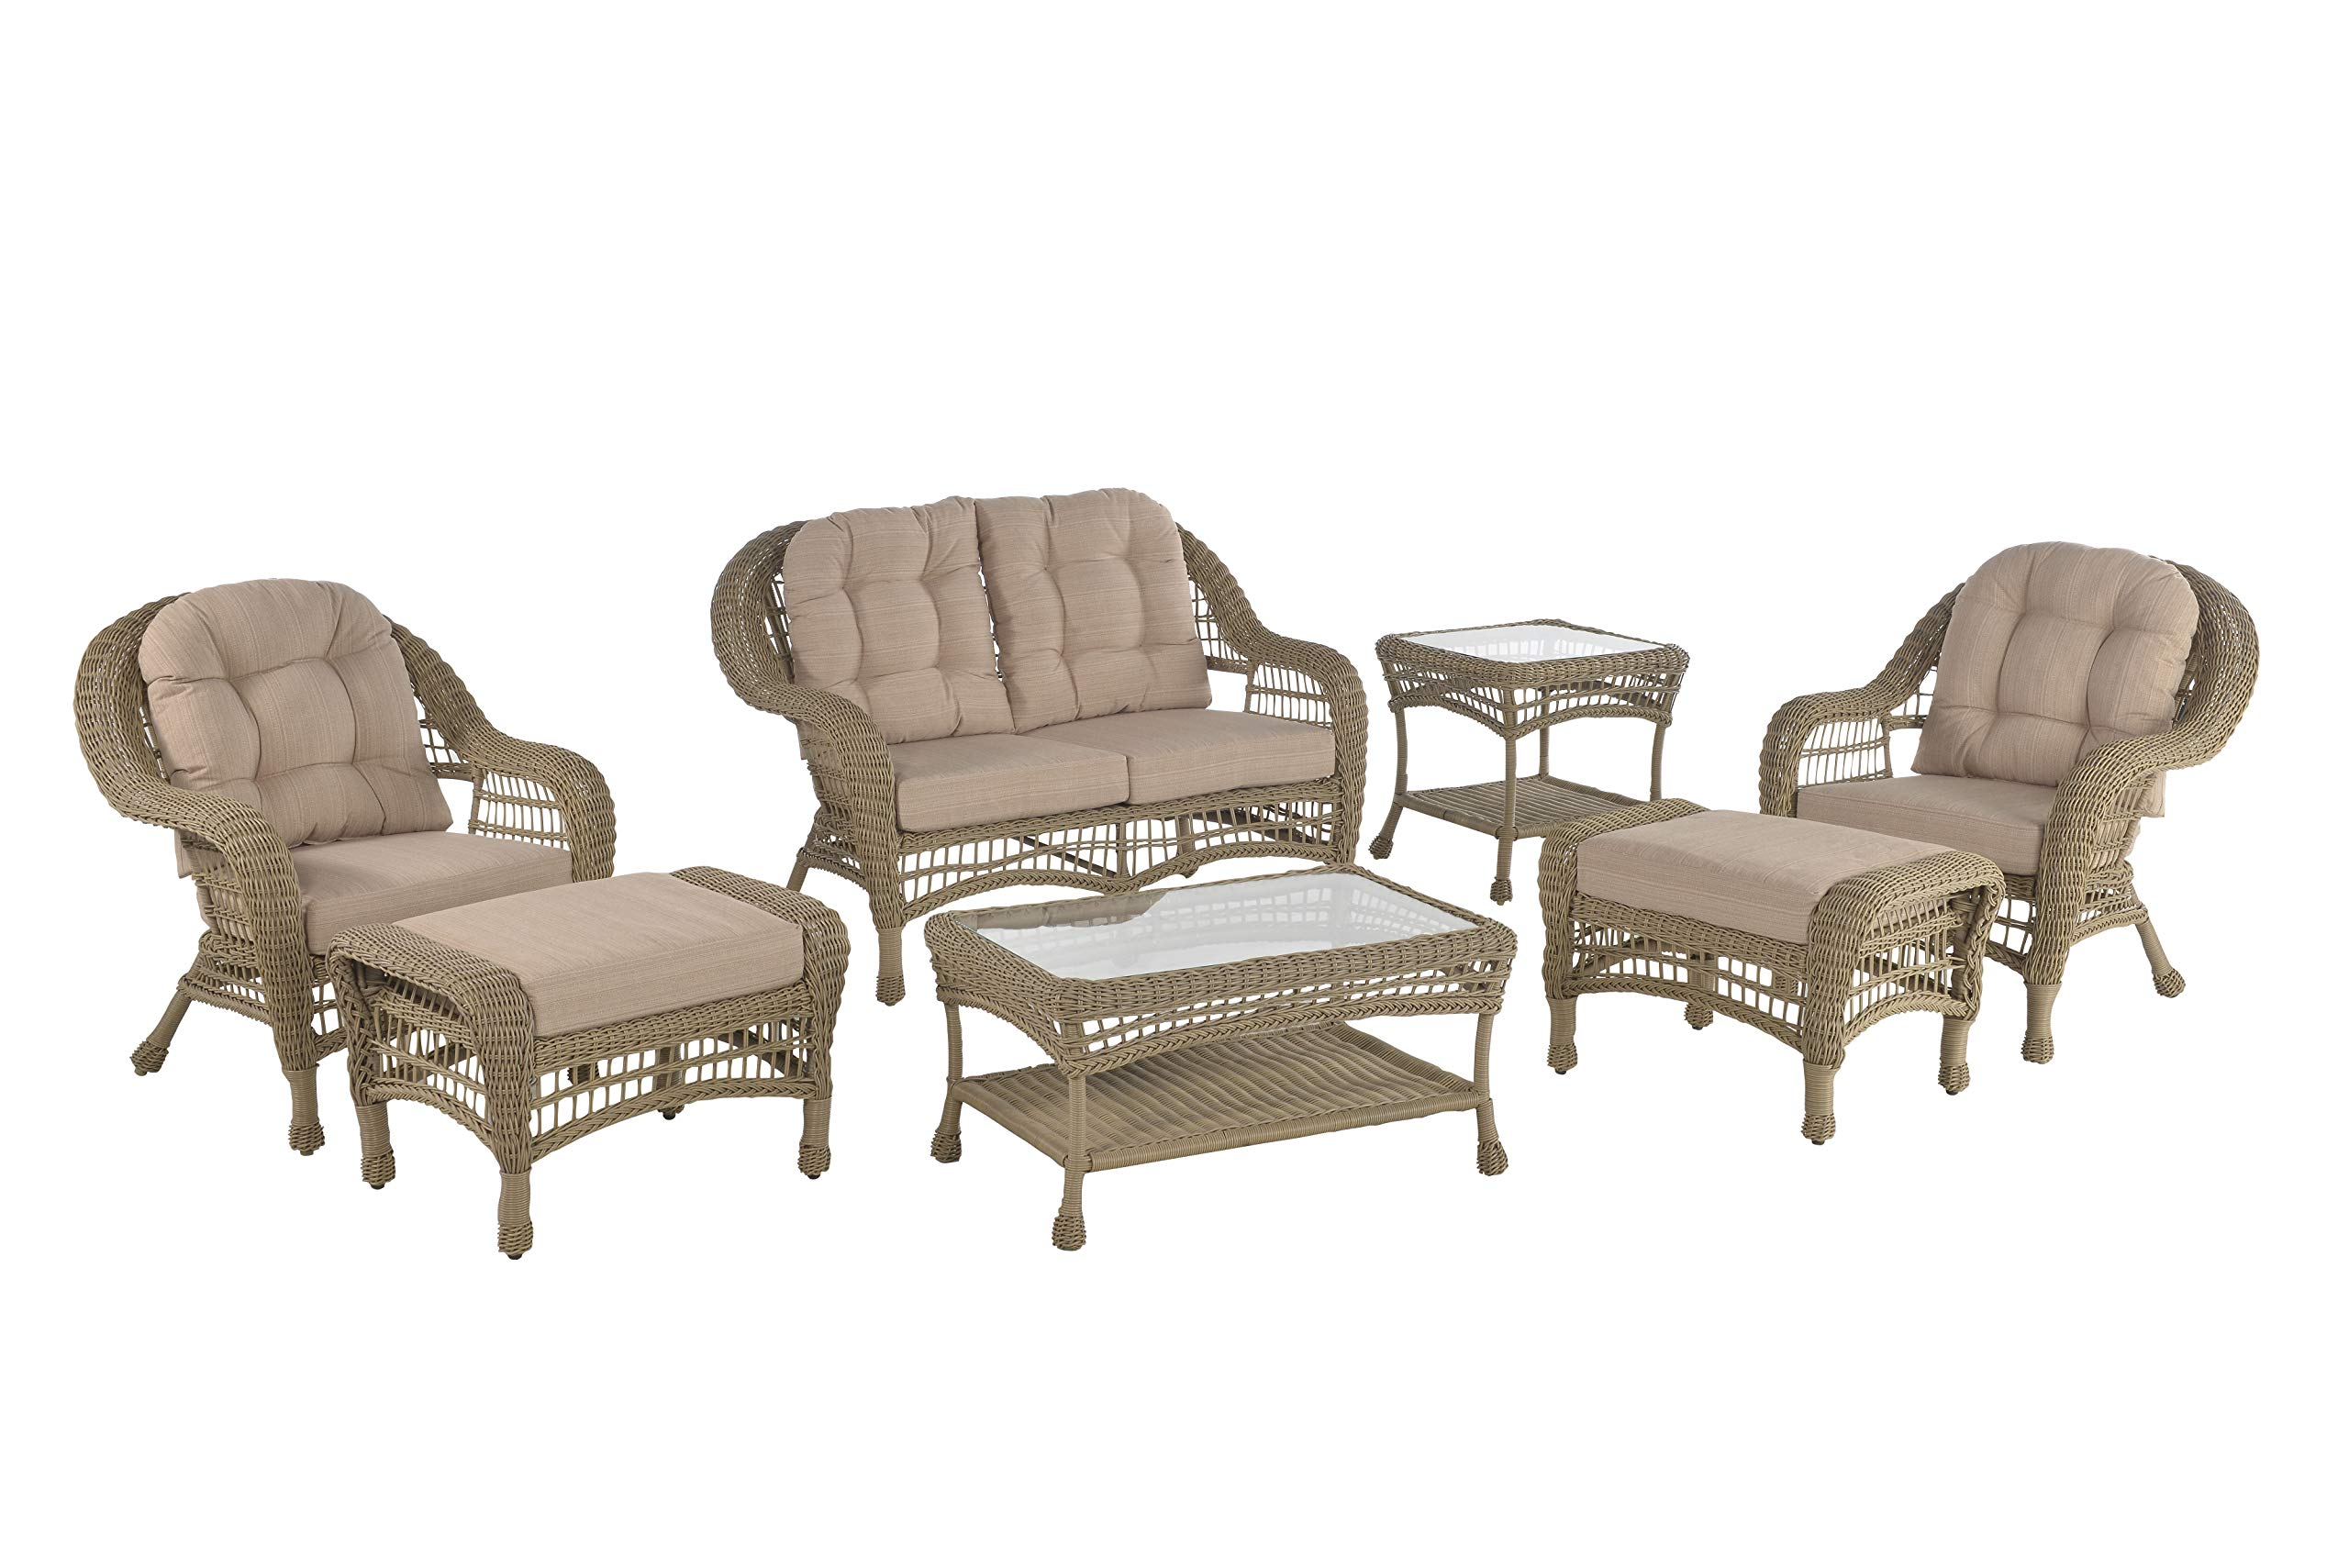 W Unlimited Saturn Collection 7 PCs Furniture Set, Light Brown